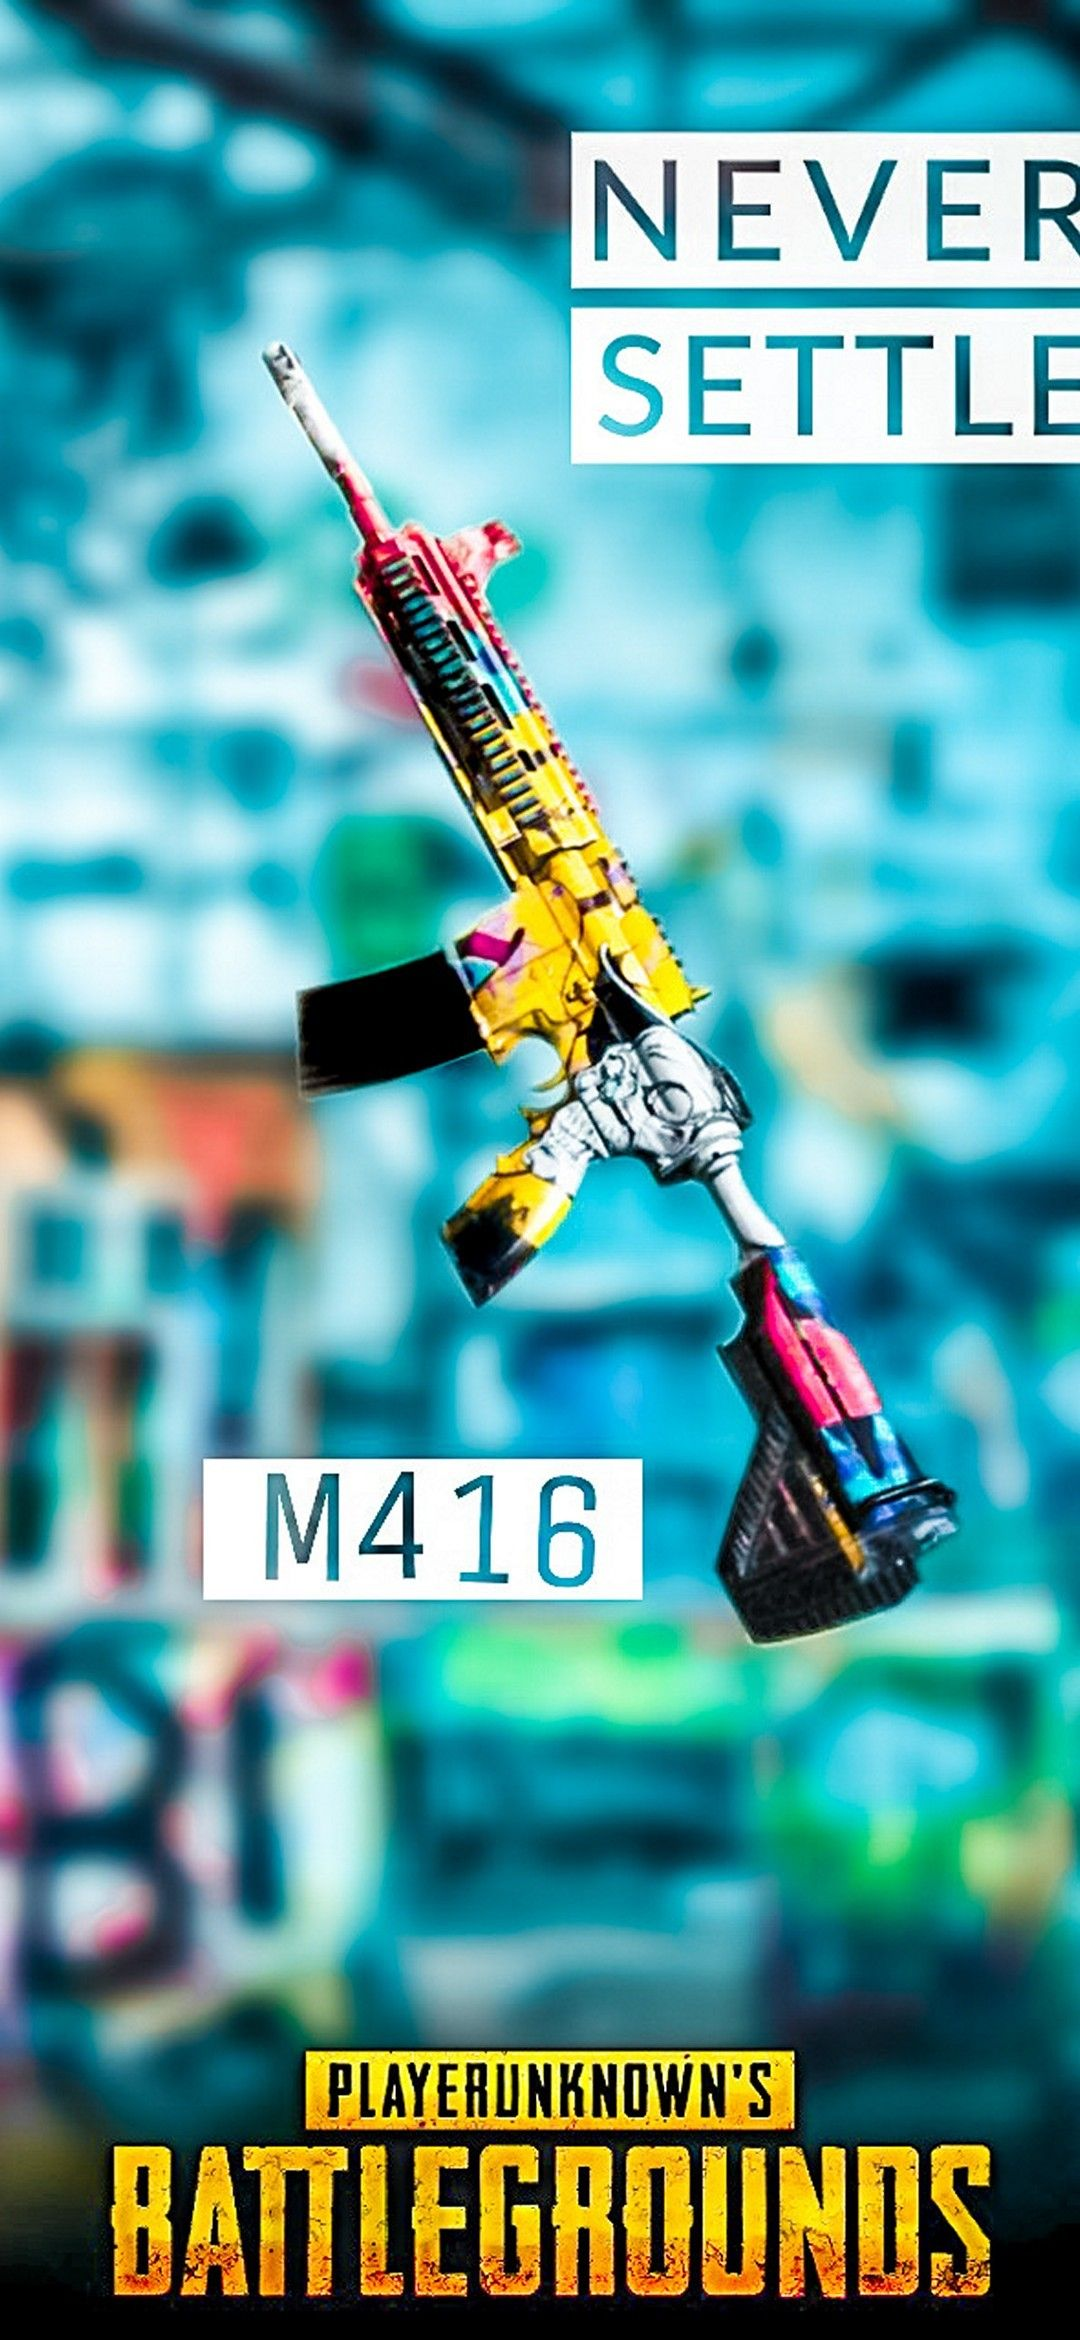 PUBG M416 in 2020 Android phone wallpaper, Phone